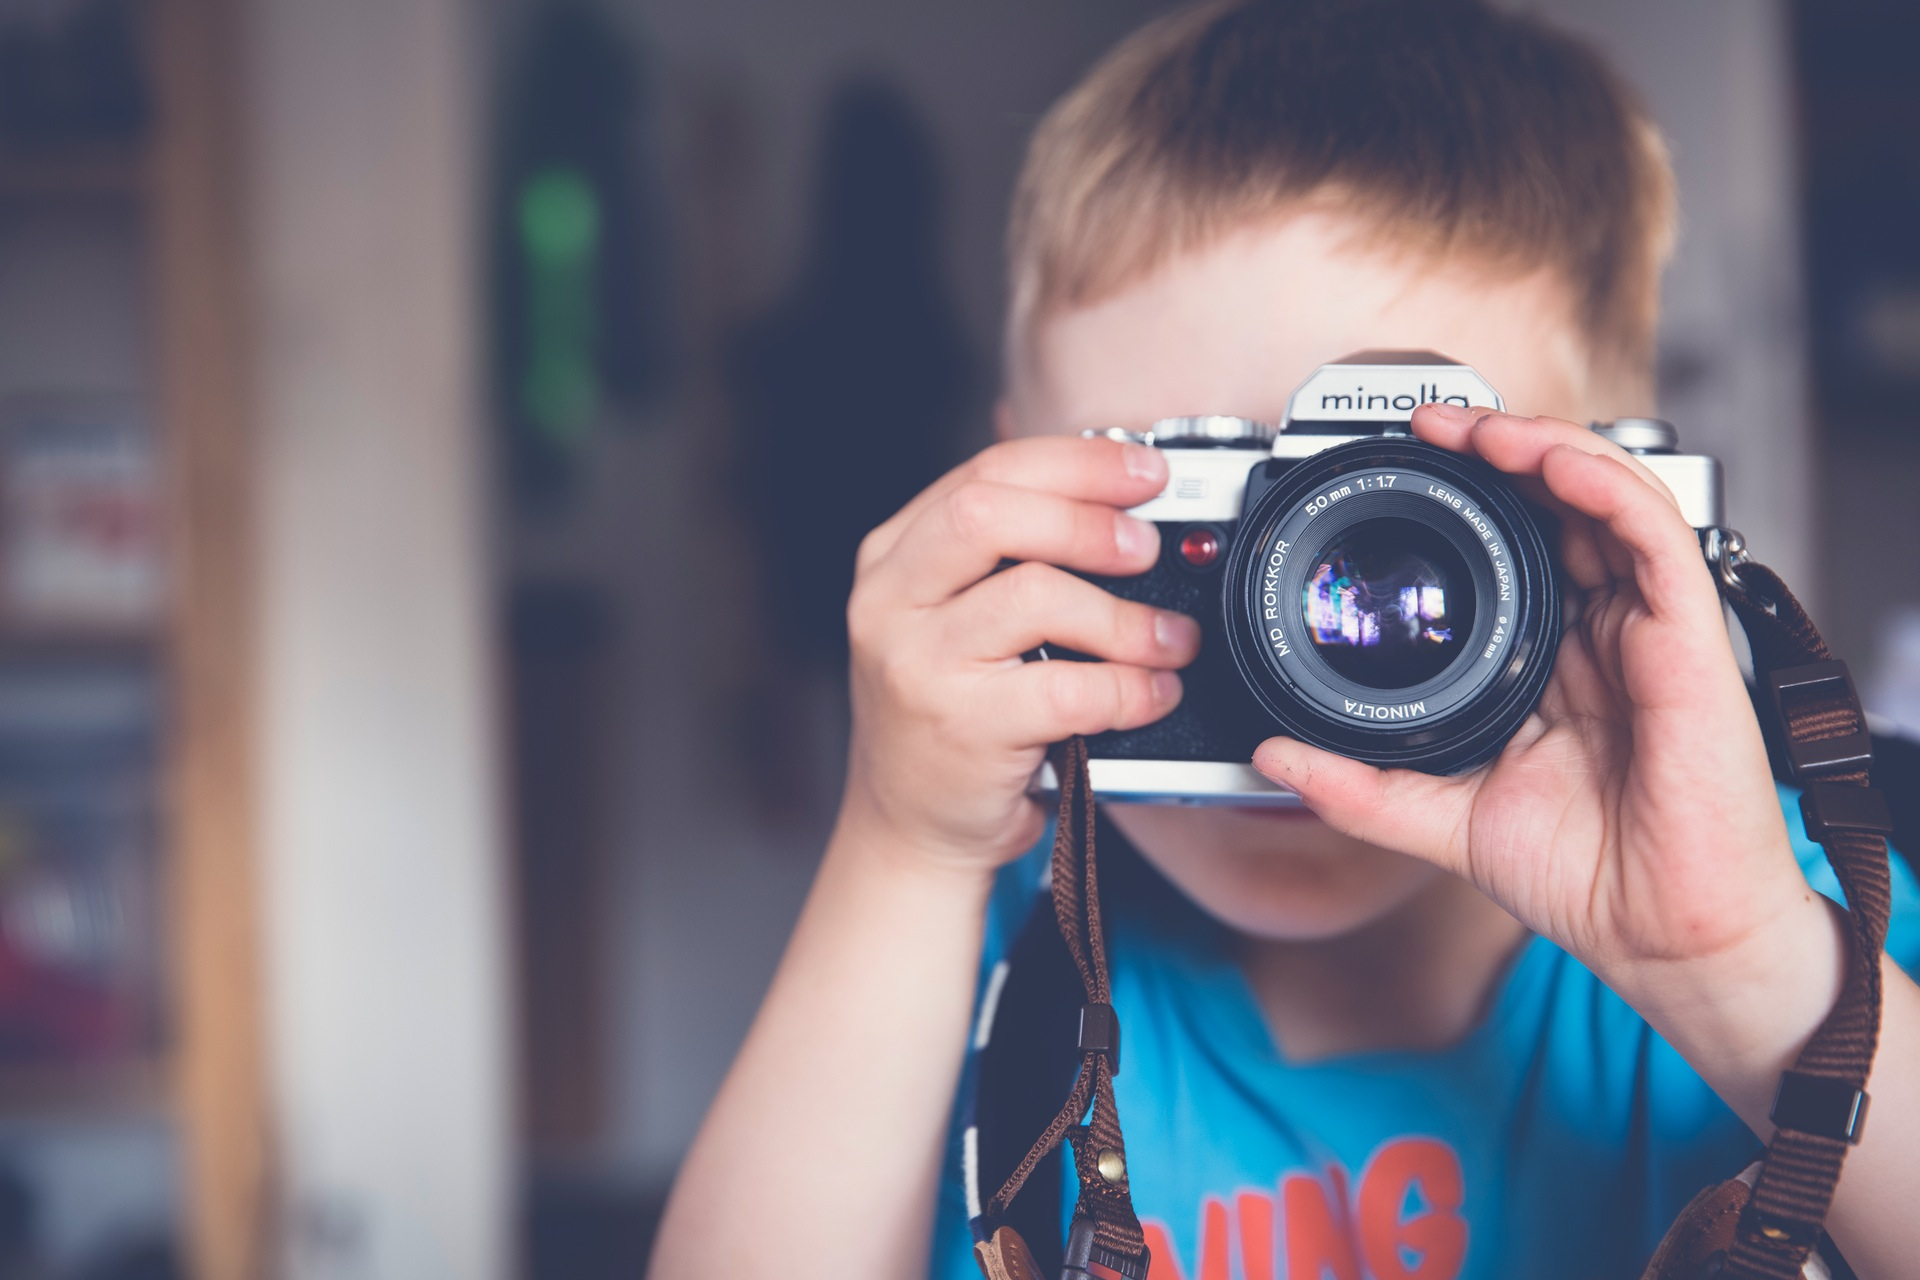 kids-are-like-paparazzi-podcast-americas-family-coaches-gary-barb-rosberg